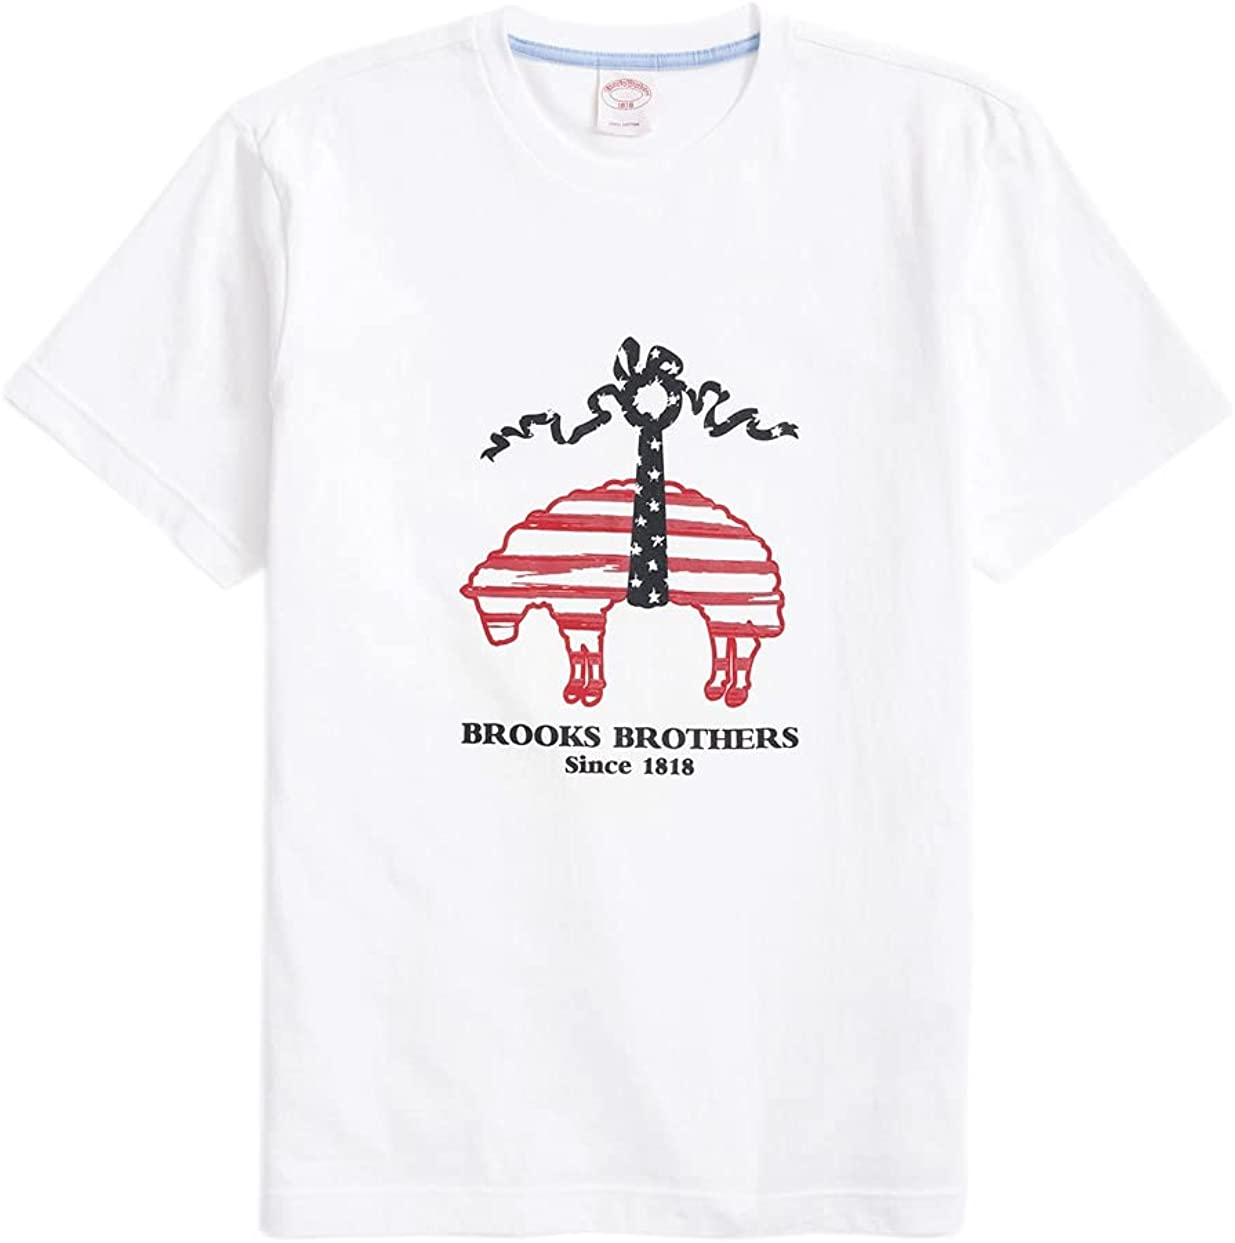 Brooks Brothers Men's 164545 Stars and Stripes Graphic Short Sleeve Tee T-Shirt White